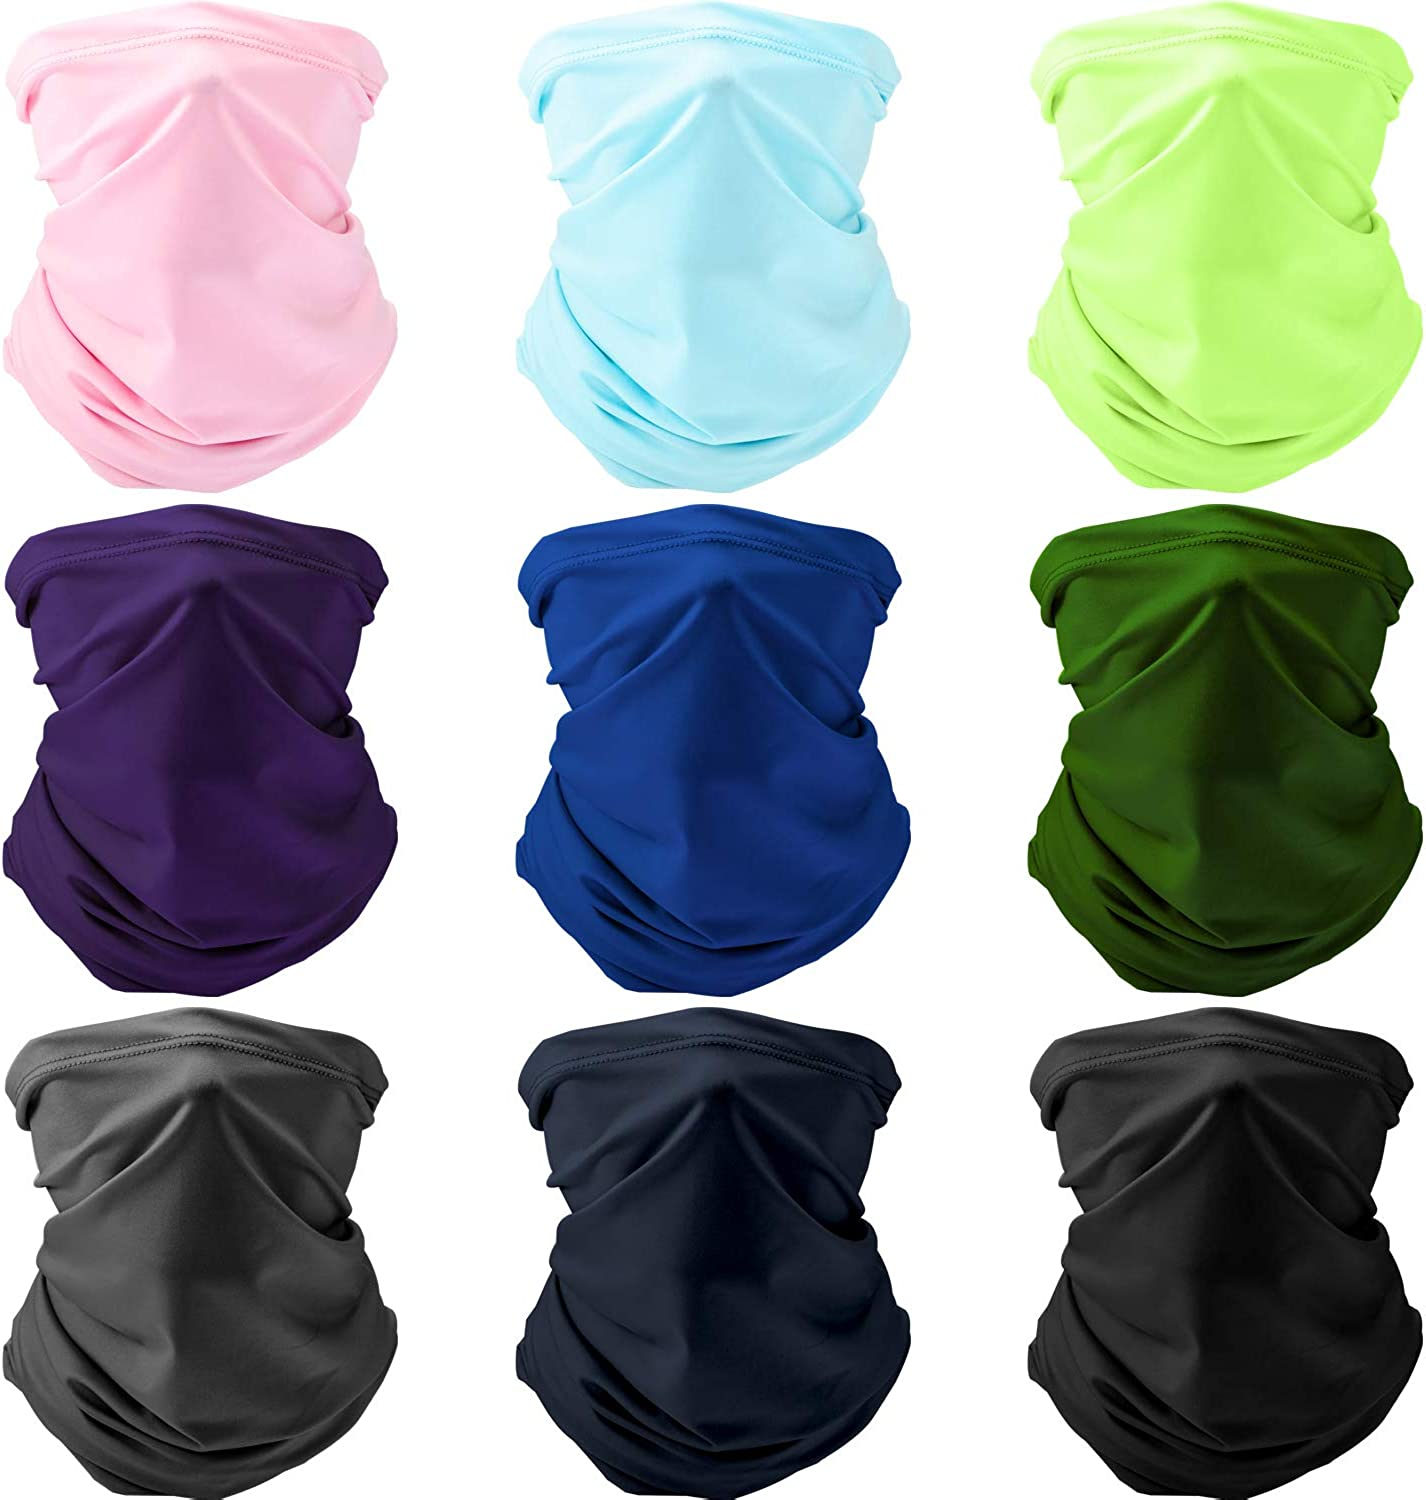 9 Pieces Summer UV Protection Face Cover Scarf Neck Gaiter Seamless Breathable Headwear Headband Bandana (Solid Color)